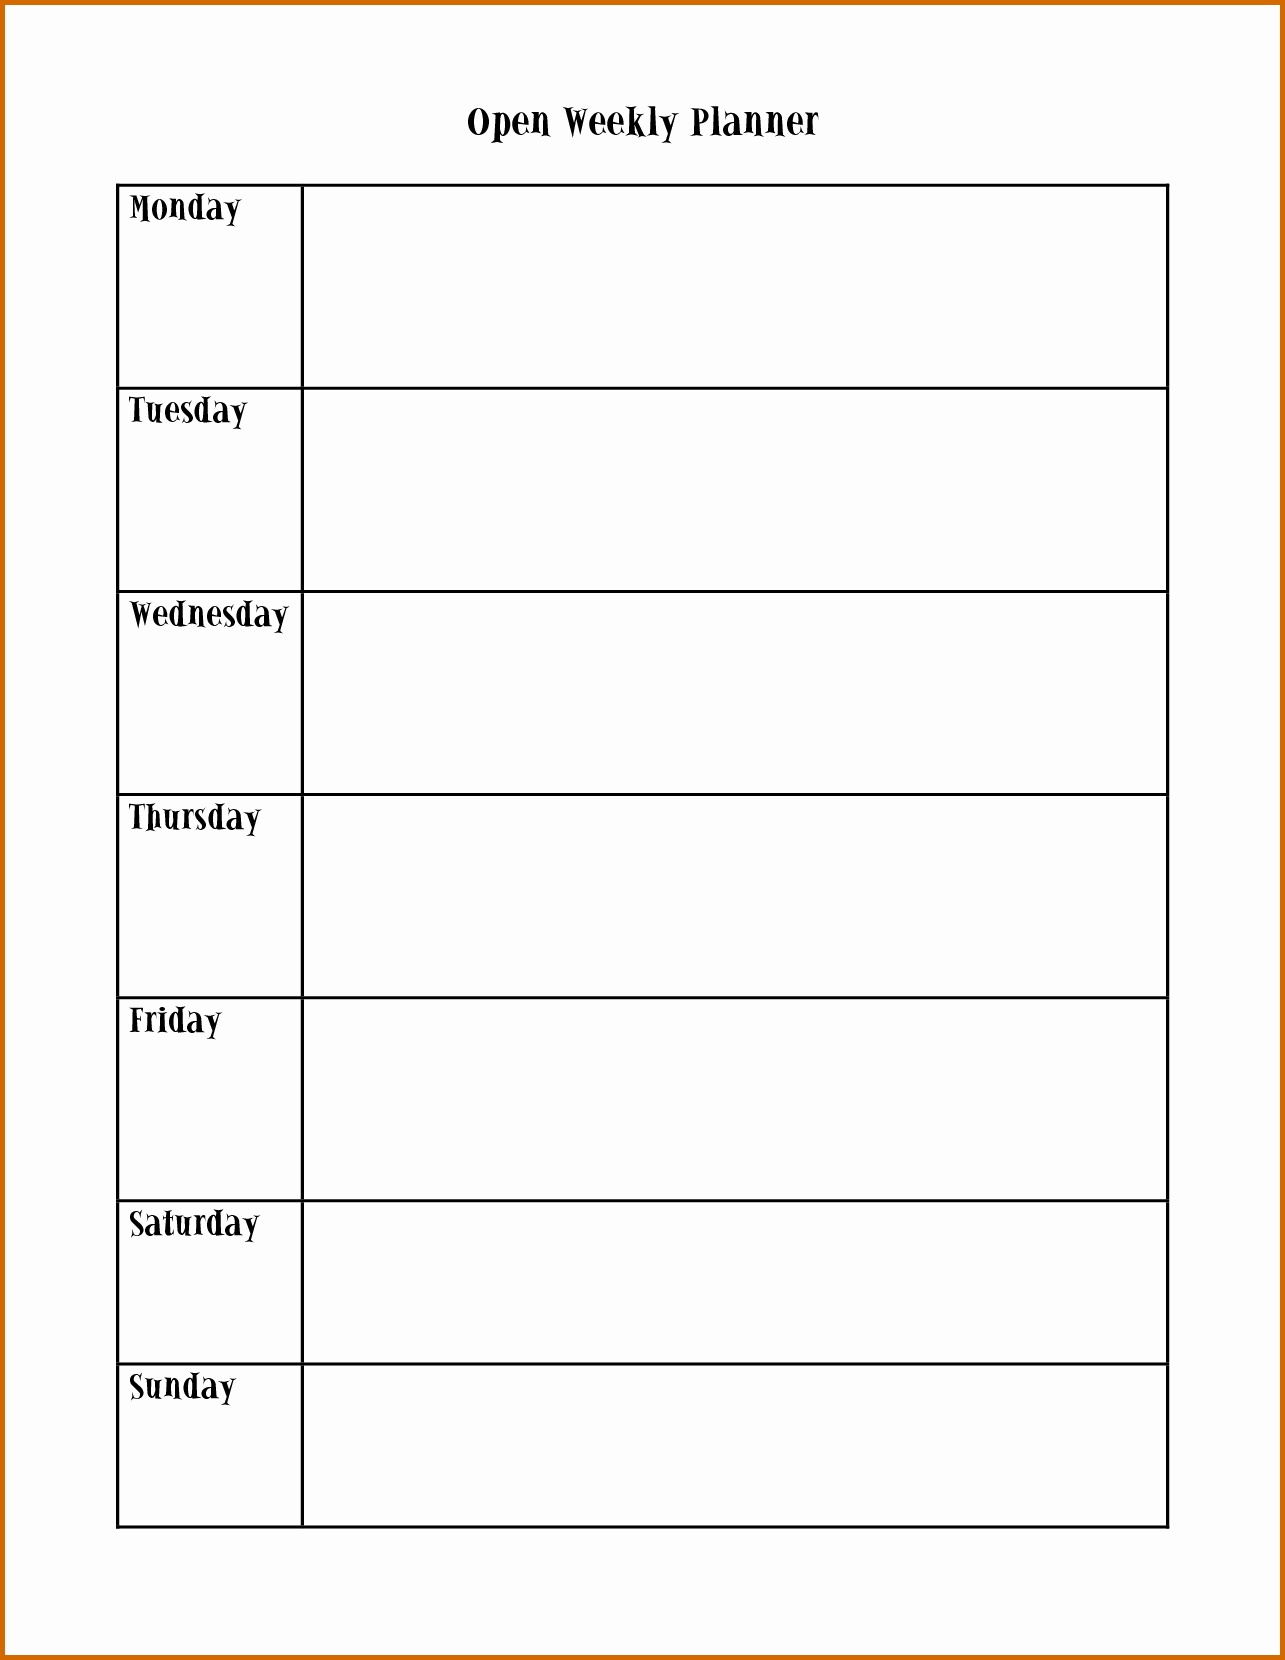 Schedule Plate Monday Through Friday Weekly Calendar Word | Smorad intended for Week Template Monday Through Friday